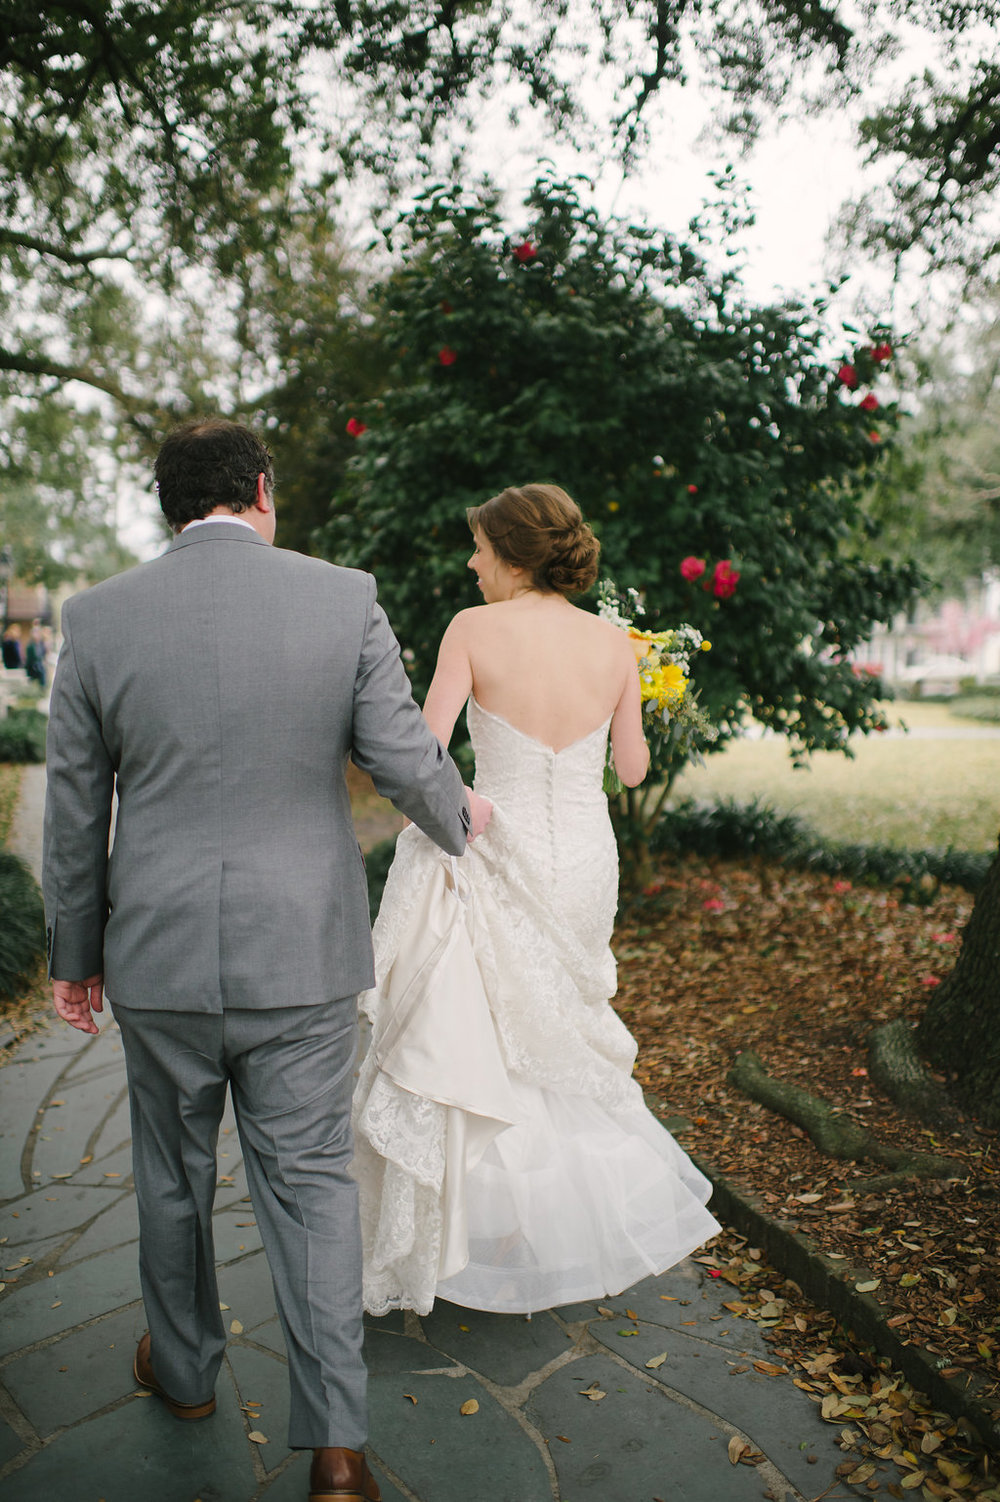 krista-and-clay-rach-loves-troy-photography-ivory-and-beau-bridal-boutique-savannah-wedding-planner-savannah-weddings-savannah-bridal-charles-h-morris-center-wedding-savannah-historic-wedding-savannah-weddings-savannah-weding-planner-14.jpg